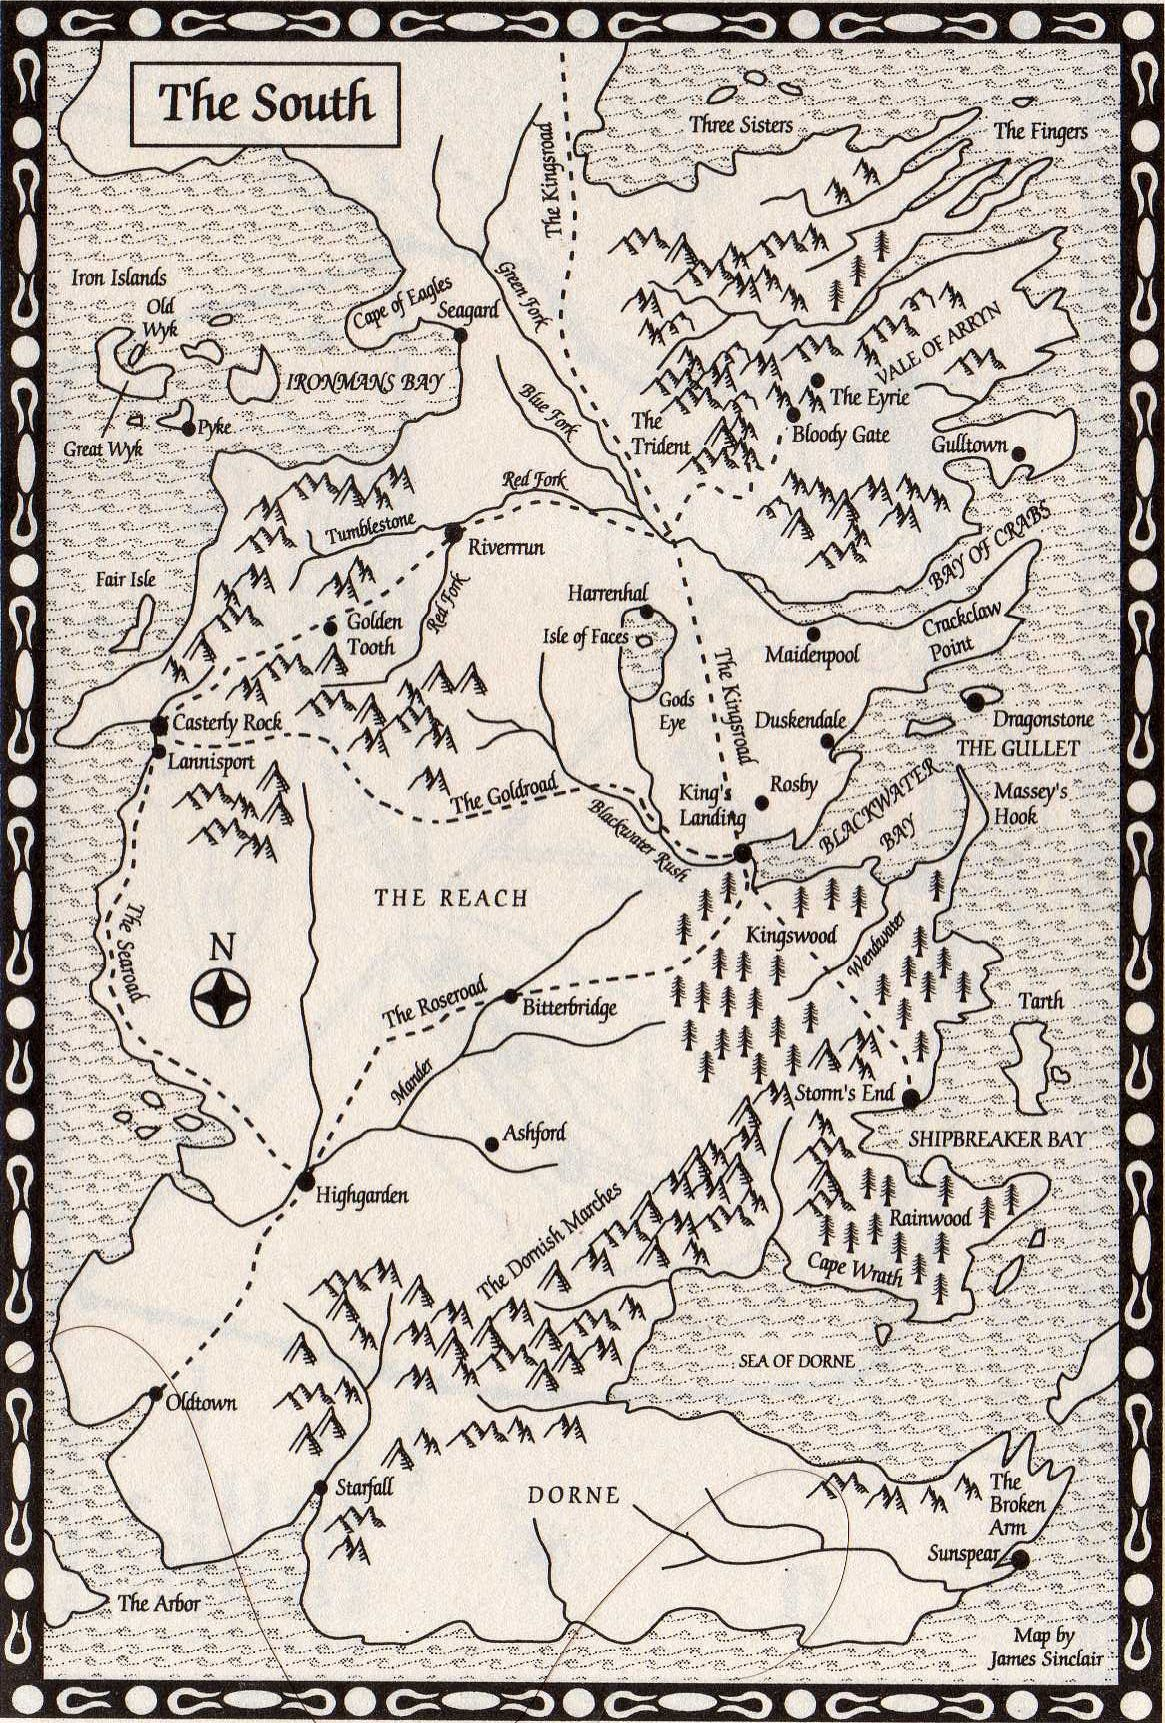 photo regarding Game of Thrones Printable Map named video game of thrones map pdf - Google Seem deal with design and style in just